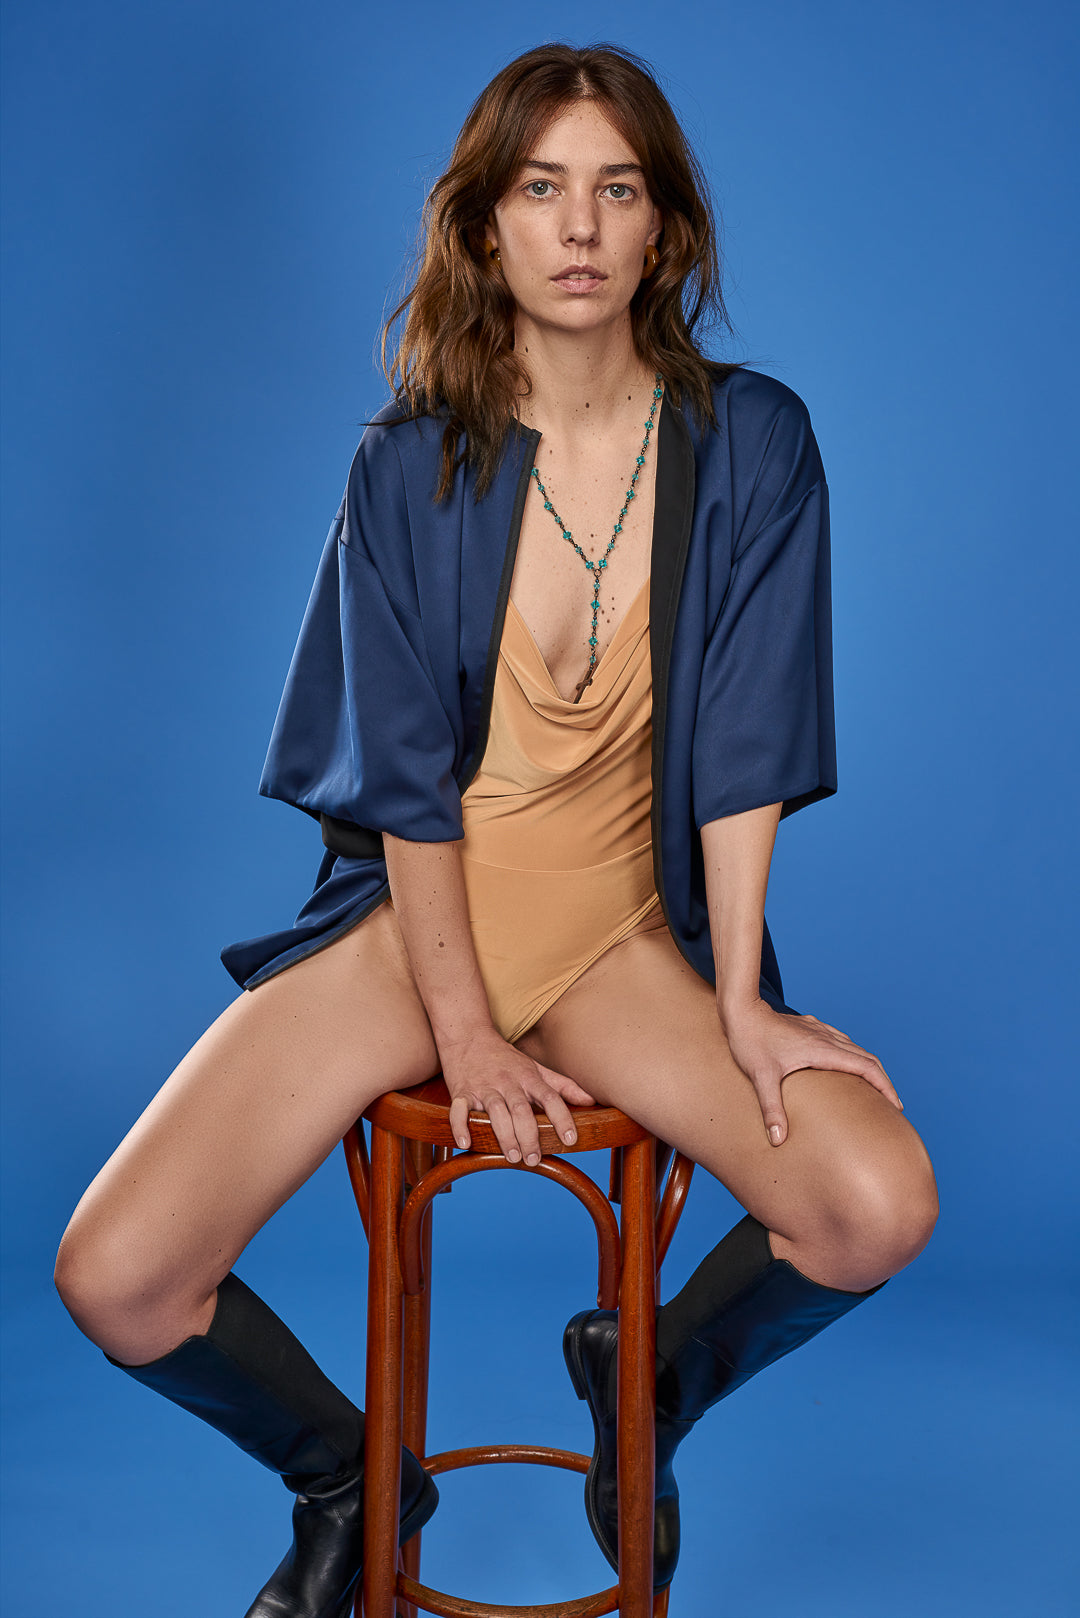 Lena Regh wearing blue kimono and yellow bodysuit with a blue backdrop